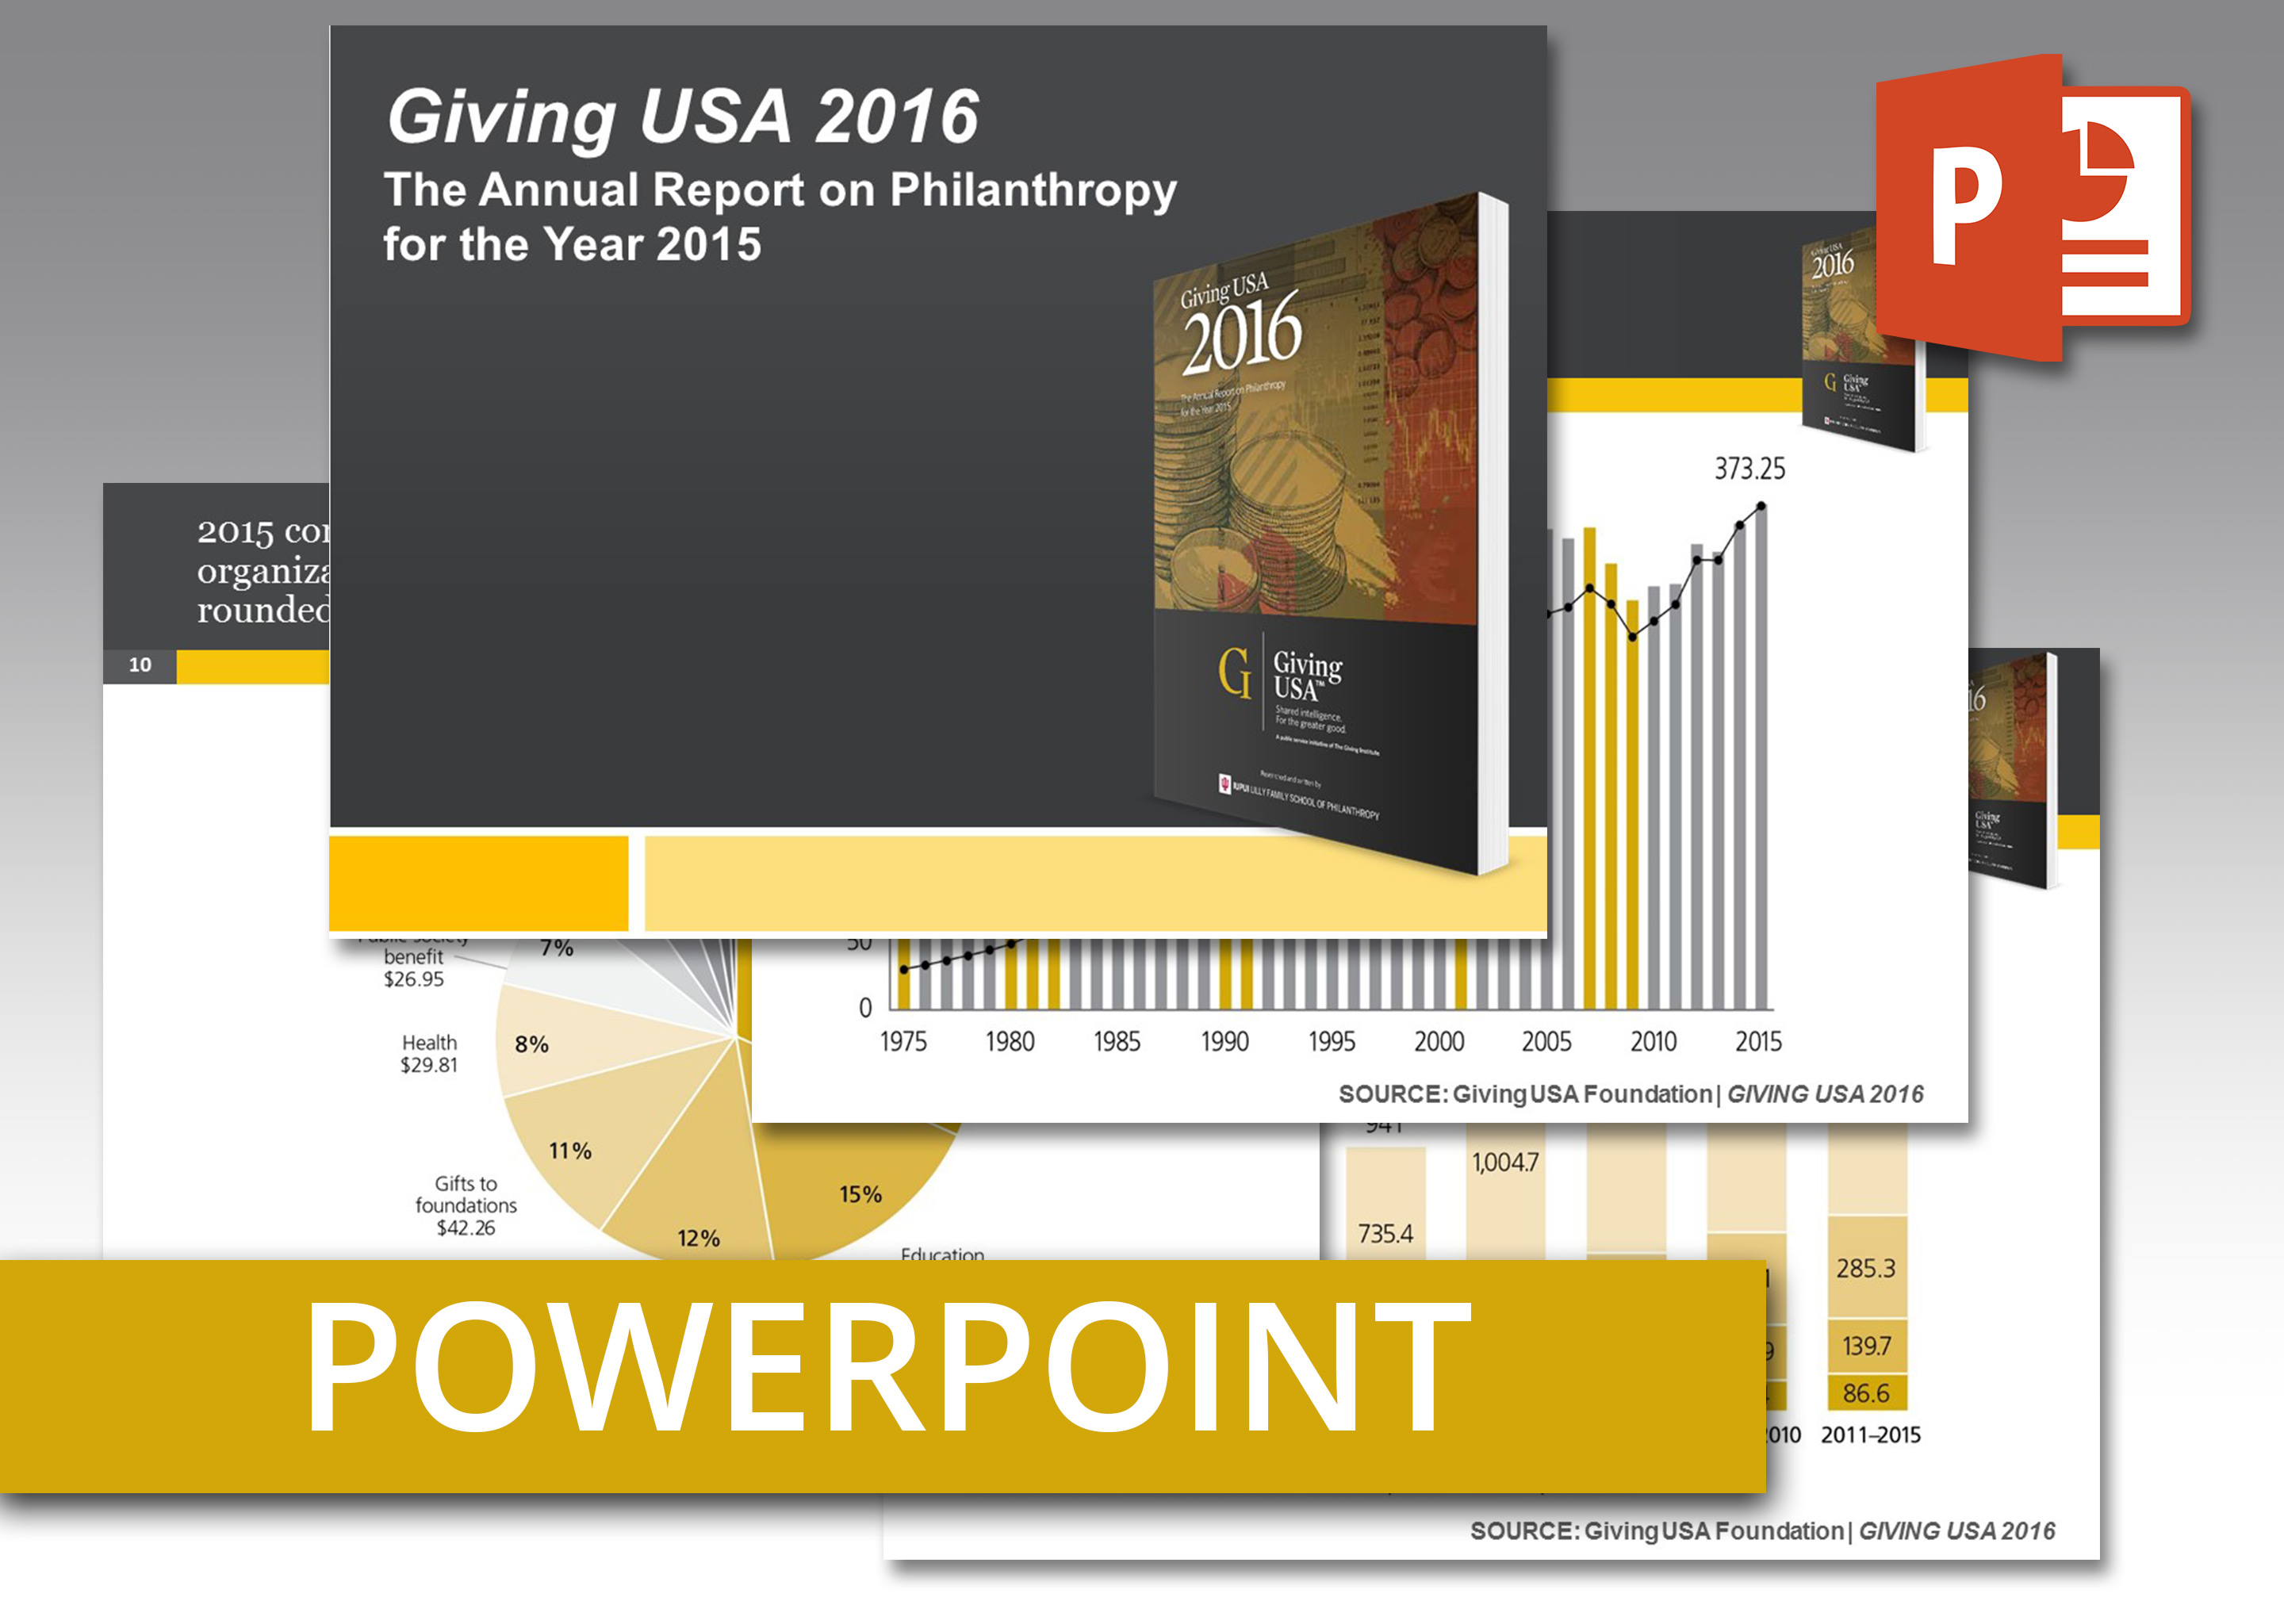 Coolmathgamesus  Pleasant Giving Usa  Powerpoint An Easytouse Presentation Of Report  With Engaging Giving Usa  Powerpoint An Easytouse Presentation Of Report Findings Including Talking Points With Beauteous Powerpoint Mockup Also Insert Pdf Into Powerpoint  In Addition Cornell Powerpoint Template And Powerpoint On Tv As Well As Marketing Plan Powerpoint Presentation Additionally Barack Obama Powerpoint From Givingusaorg With Coolmathgamesus  Engaging Giving Usa  Powerpoint An Easytouse Presentation Of Report  With Beauteous Giving Usa  Powerpoint An Easytouse Presentation Of Report Findings Including Talking Points And Pleasant Powerpoint Mockup Also Insert Pdf Into Powerpoint  In Addition Cornell Powerpoint Template From Givingusaorg